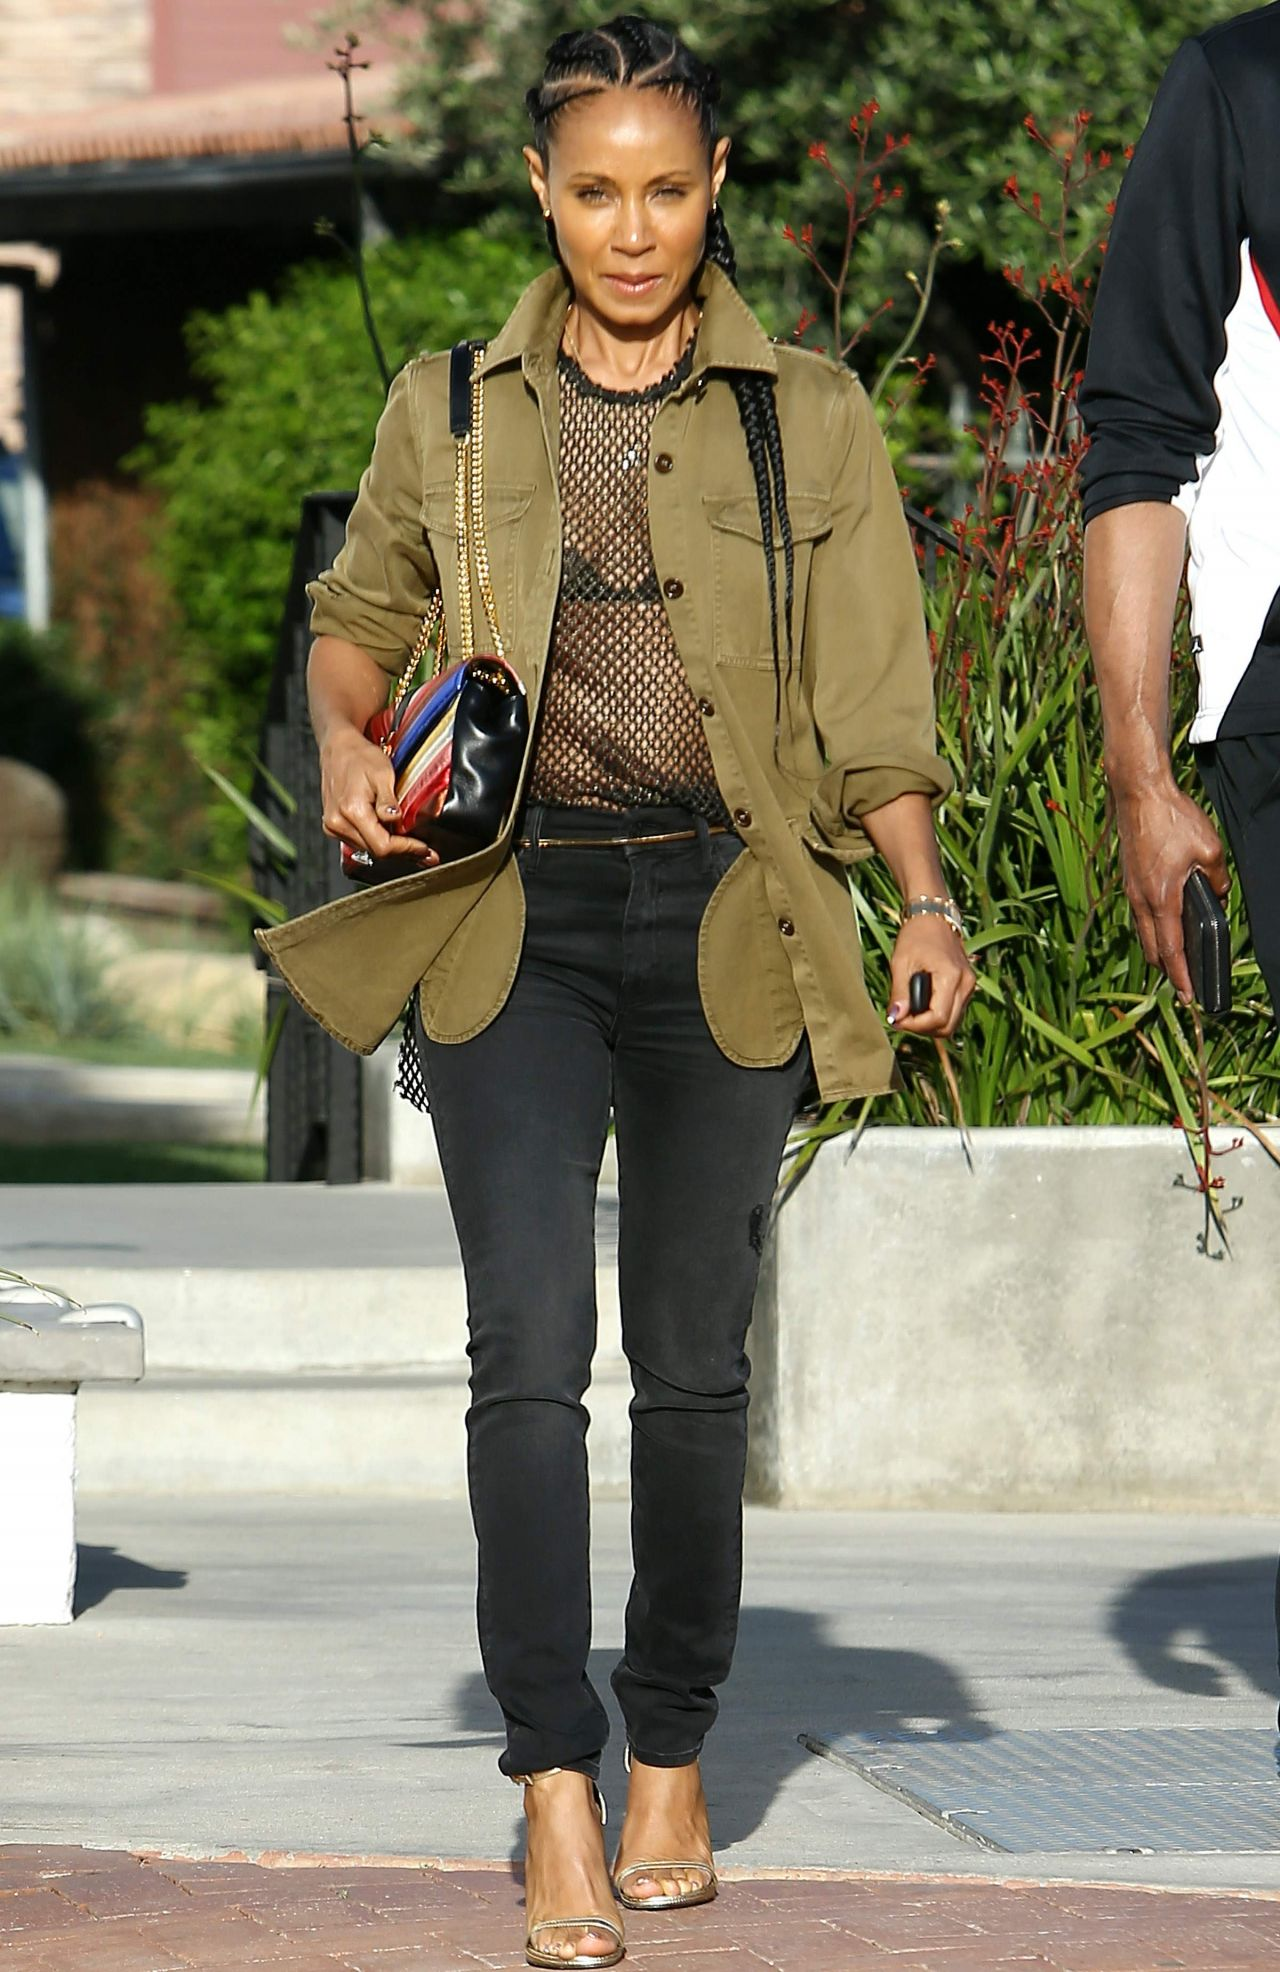 Jada Pinkett Smith In Casual Attire Out In Los Angeles 4